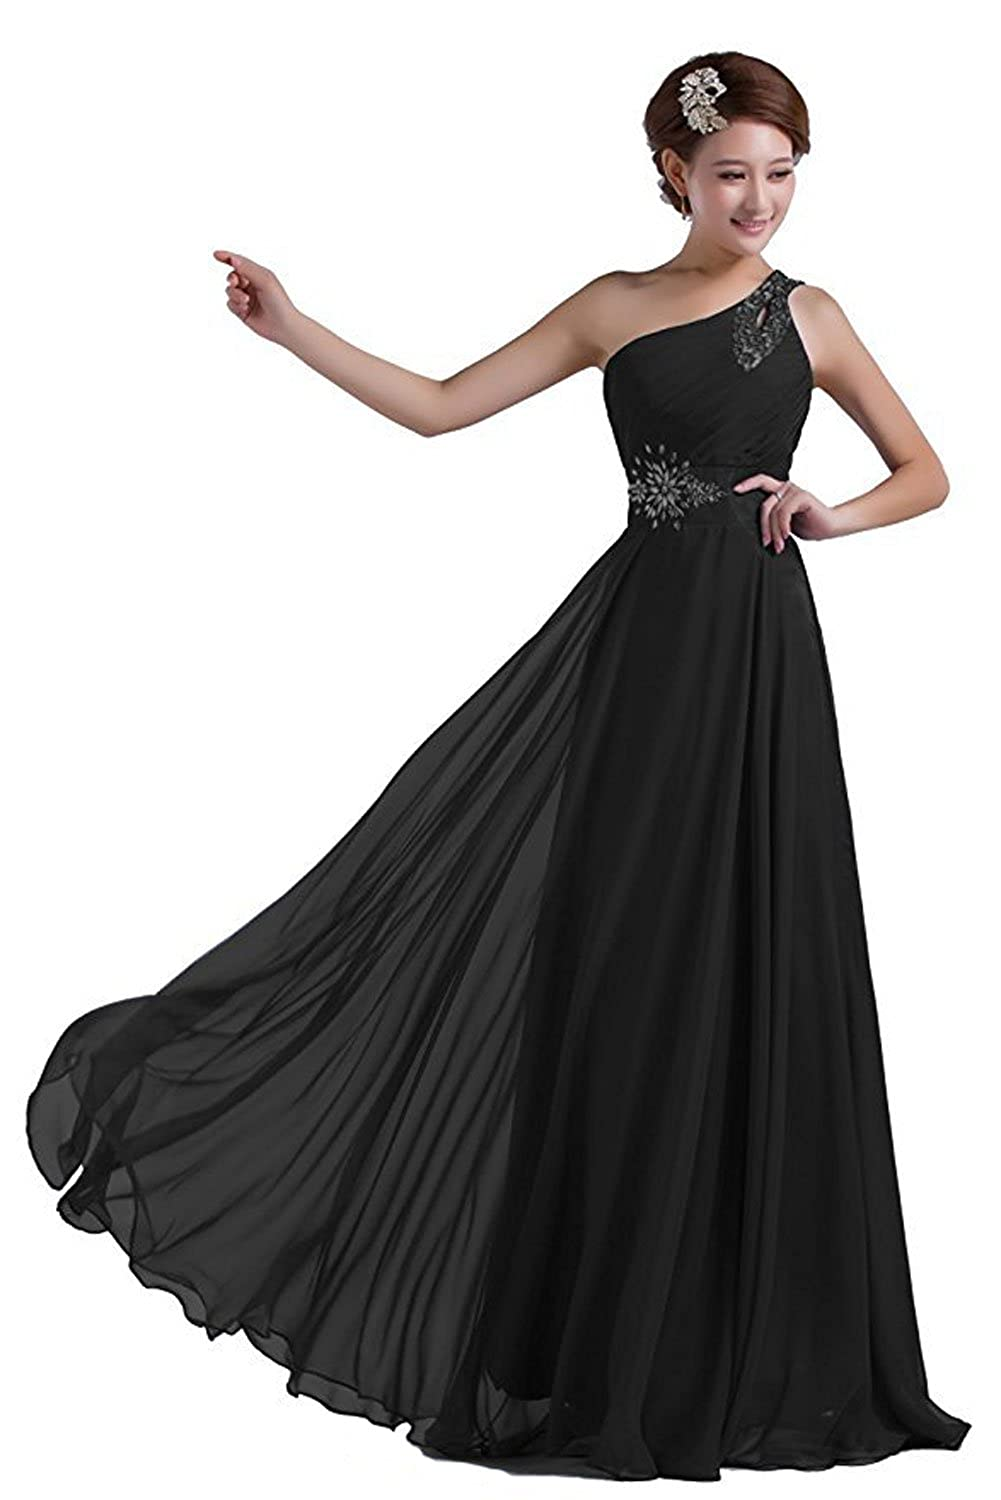 Chic Bride One Shoulder Beads Floor Length Bridesmaid Dress Long Prom Dress at Amazon Womens Clothing store: